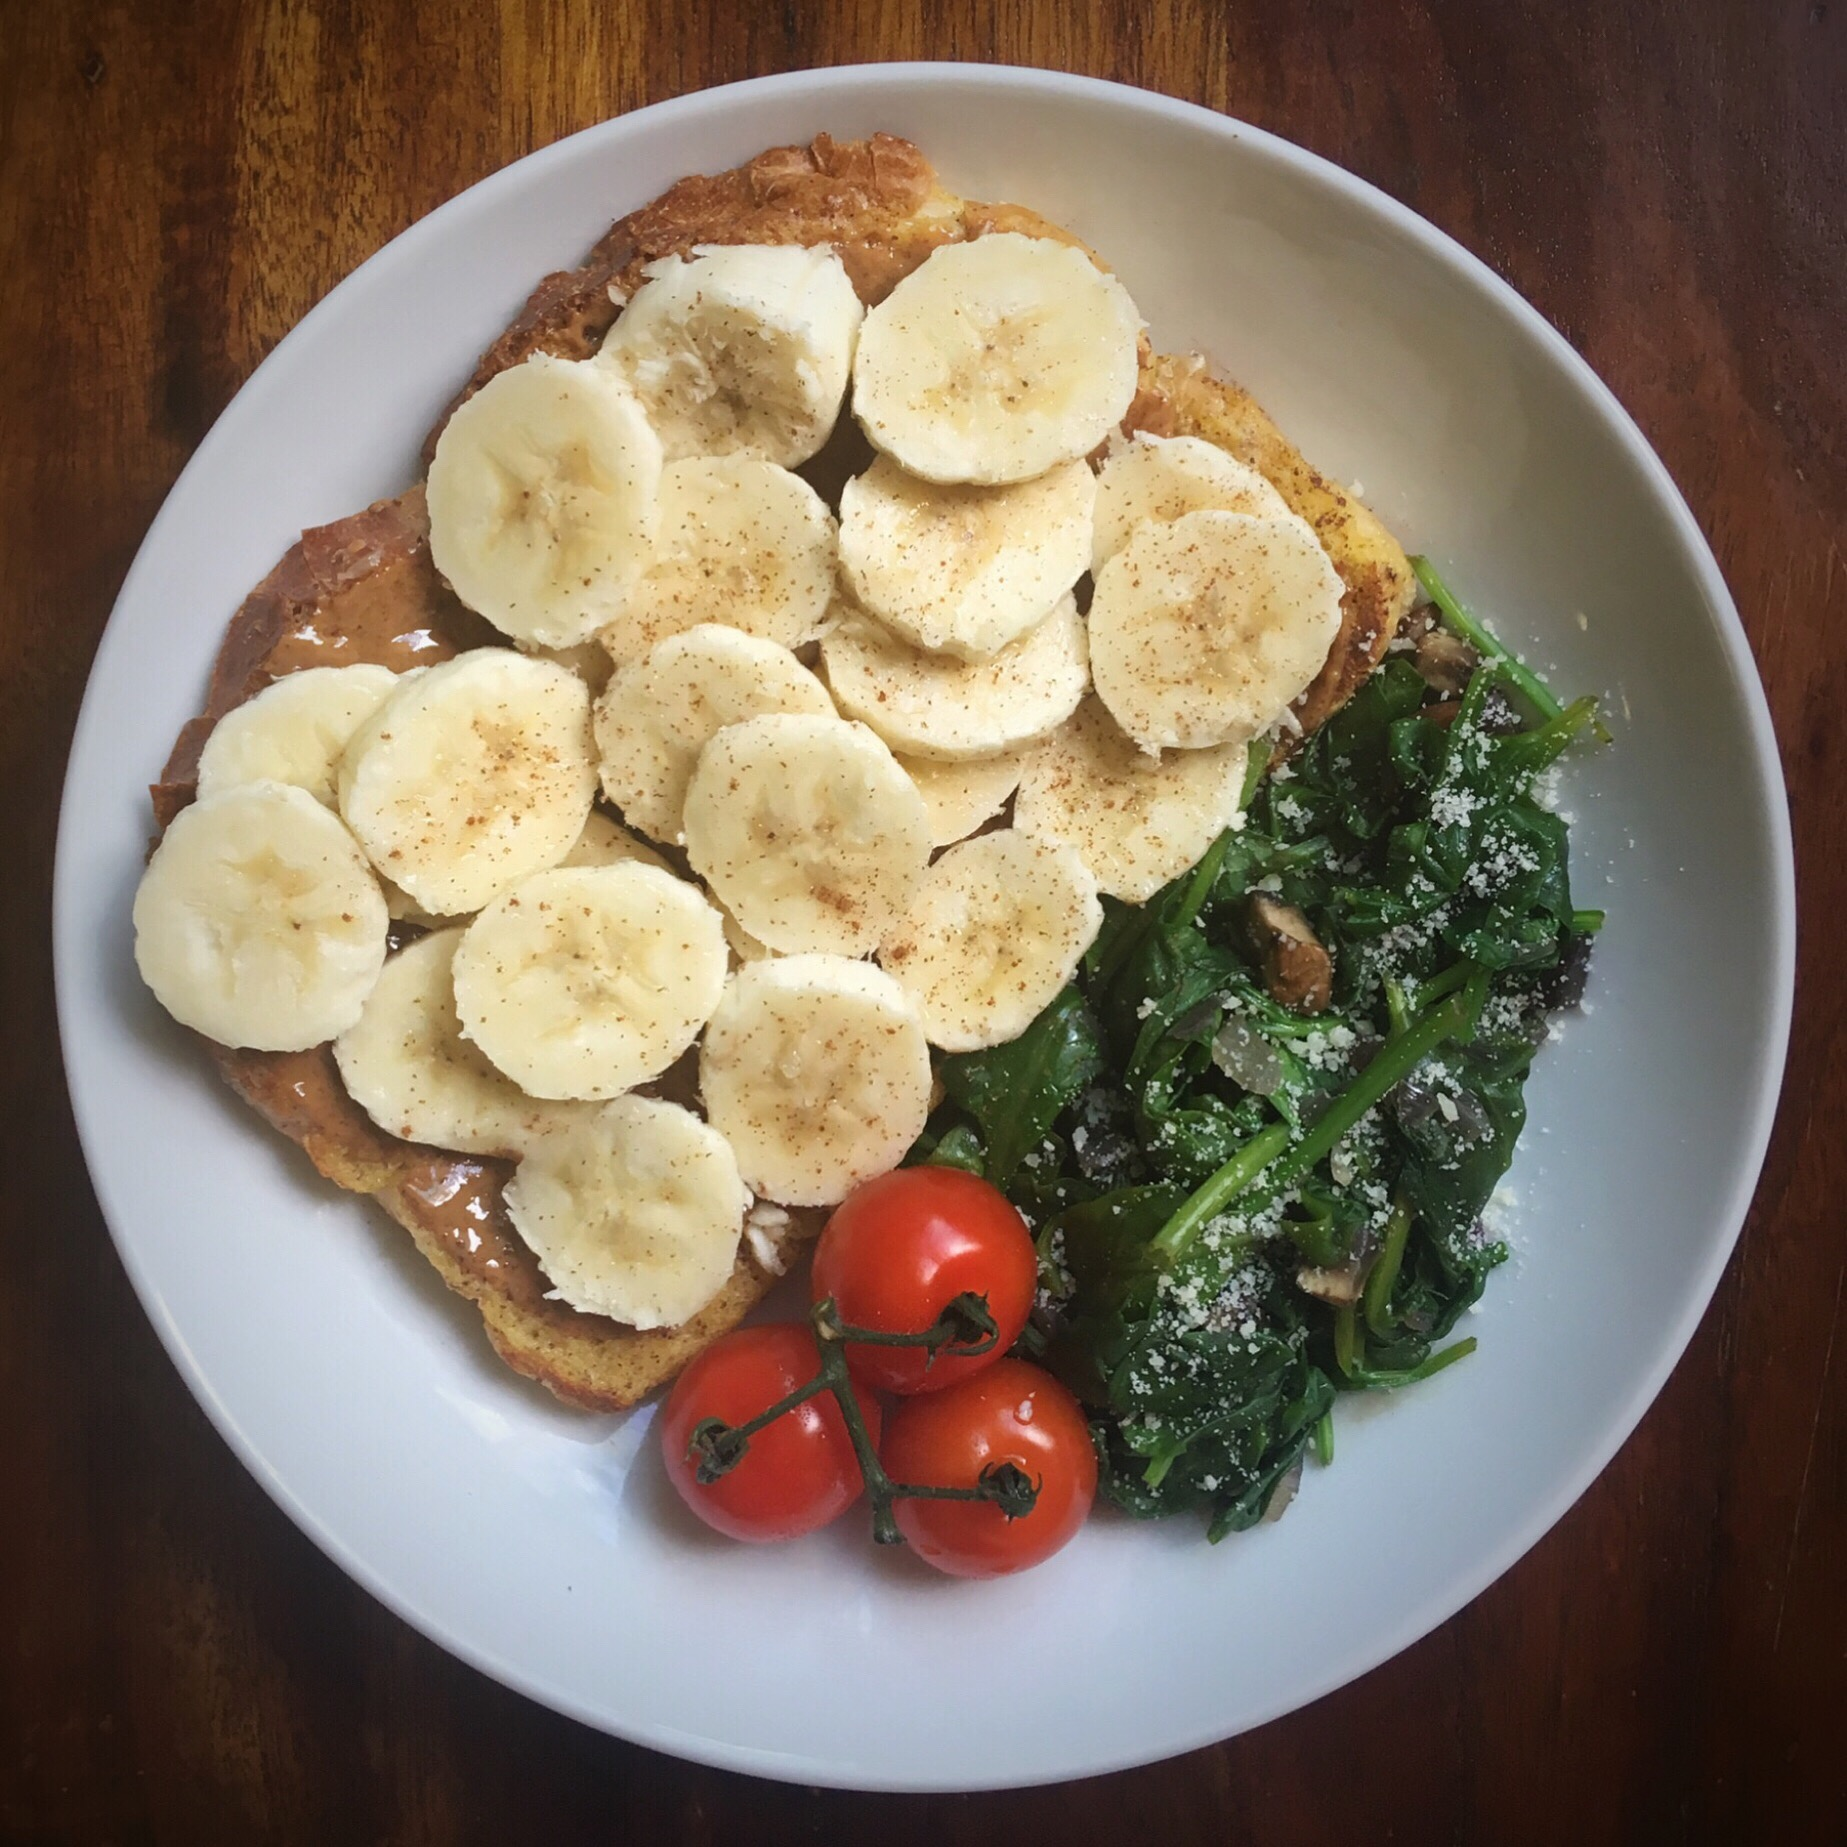 Banana and Almond Butter French Toast with Sautéed Spinach Salad and Tomatoes